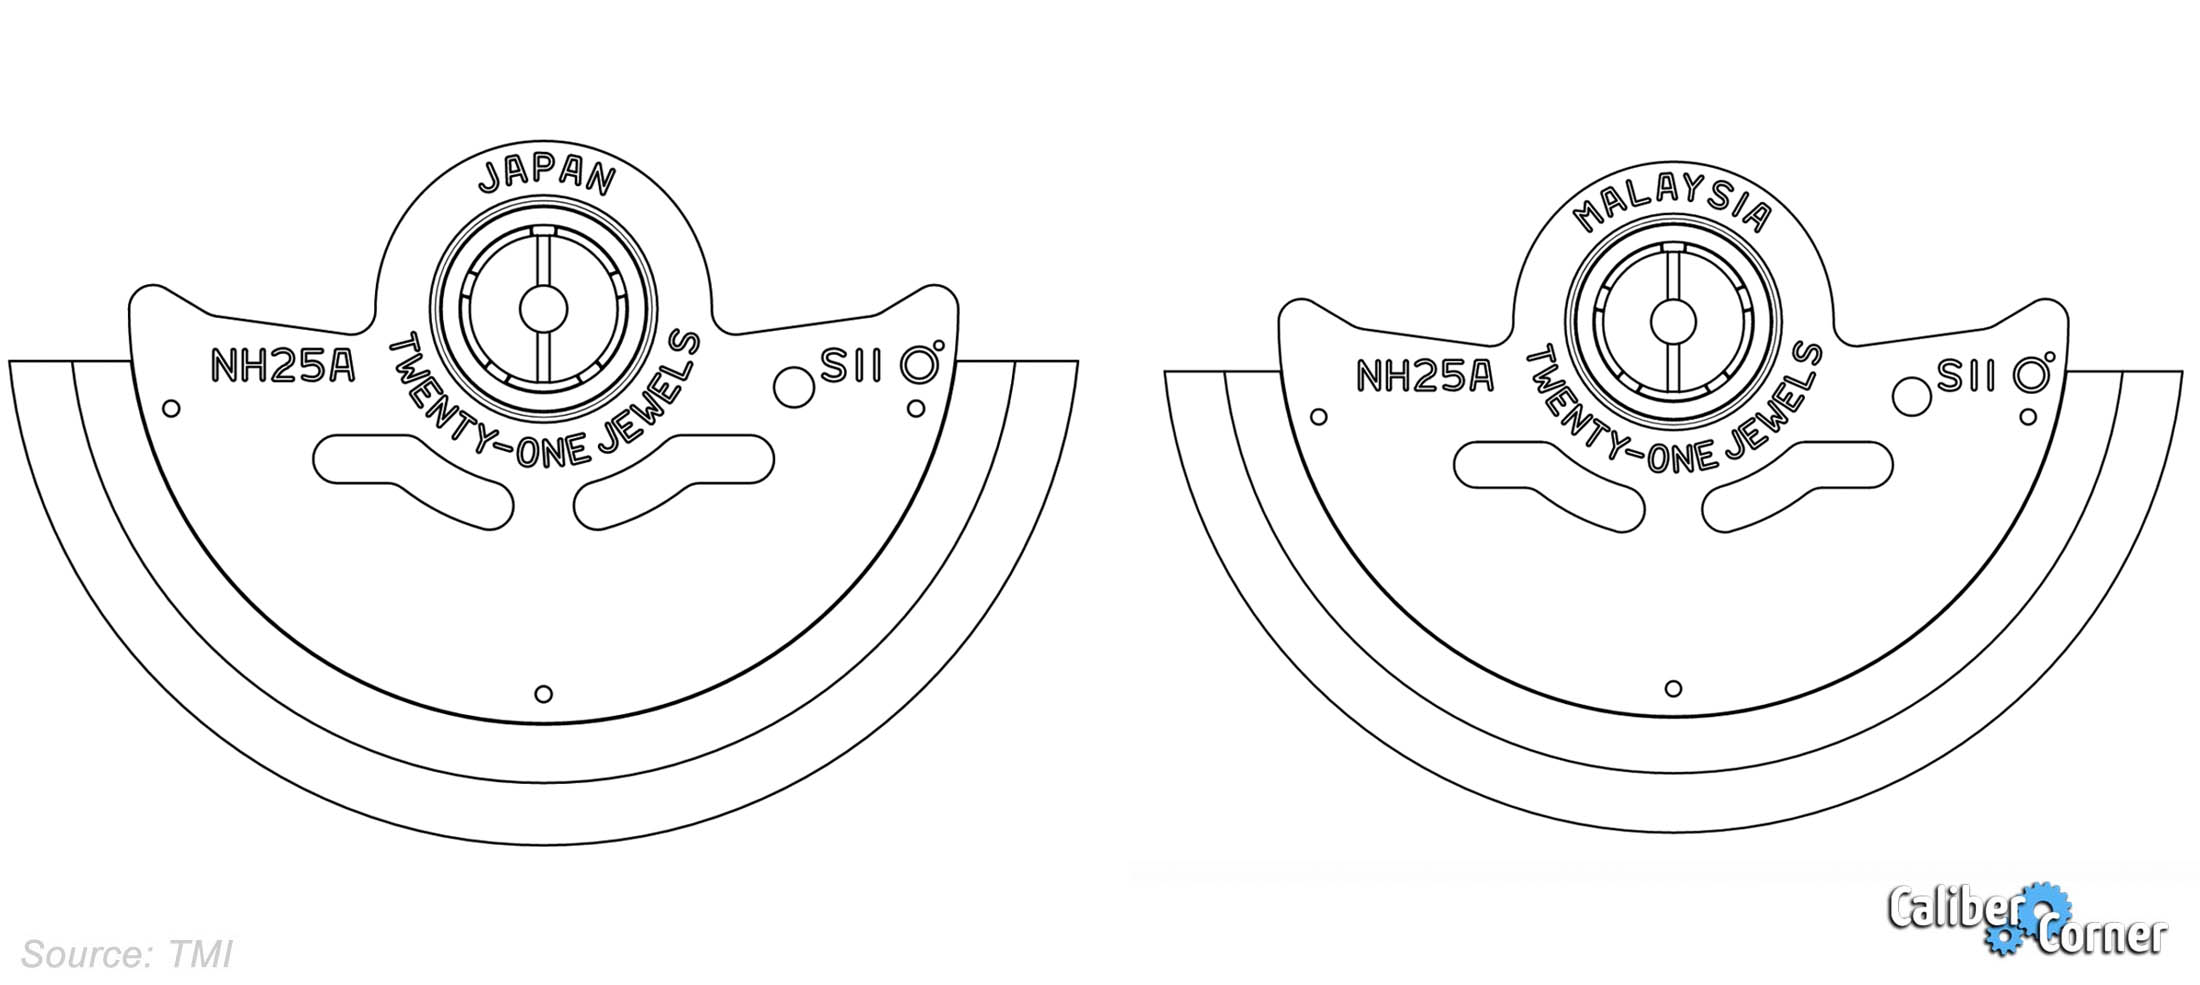 Seiko Nh25 Rotor Differences